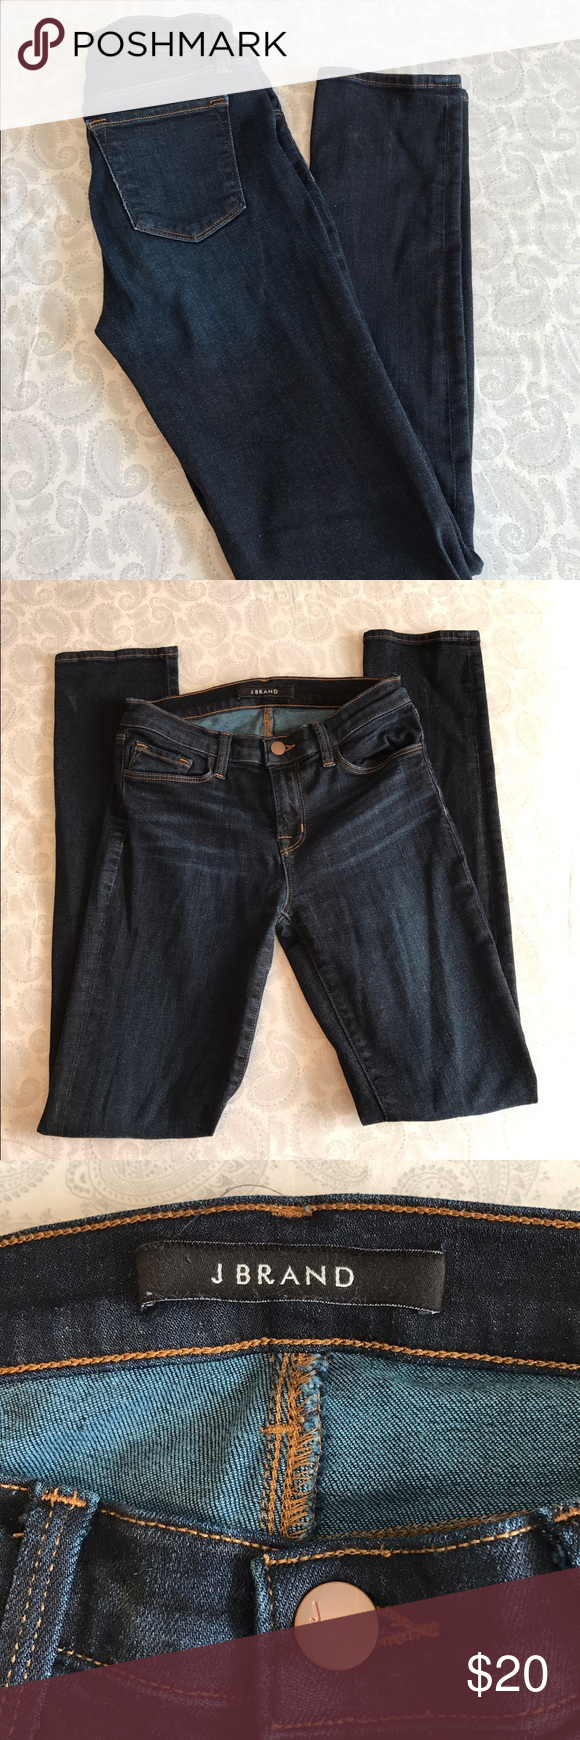 """J Brand Skinnies J Brand Skinnies. Size 26 & in EUC. Dark wash with 31"""" inseam. In flaws or signs of wear. J Brand Jeans Skinny"""